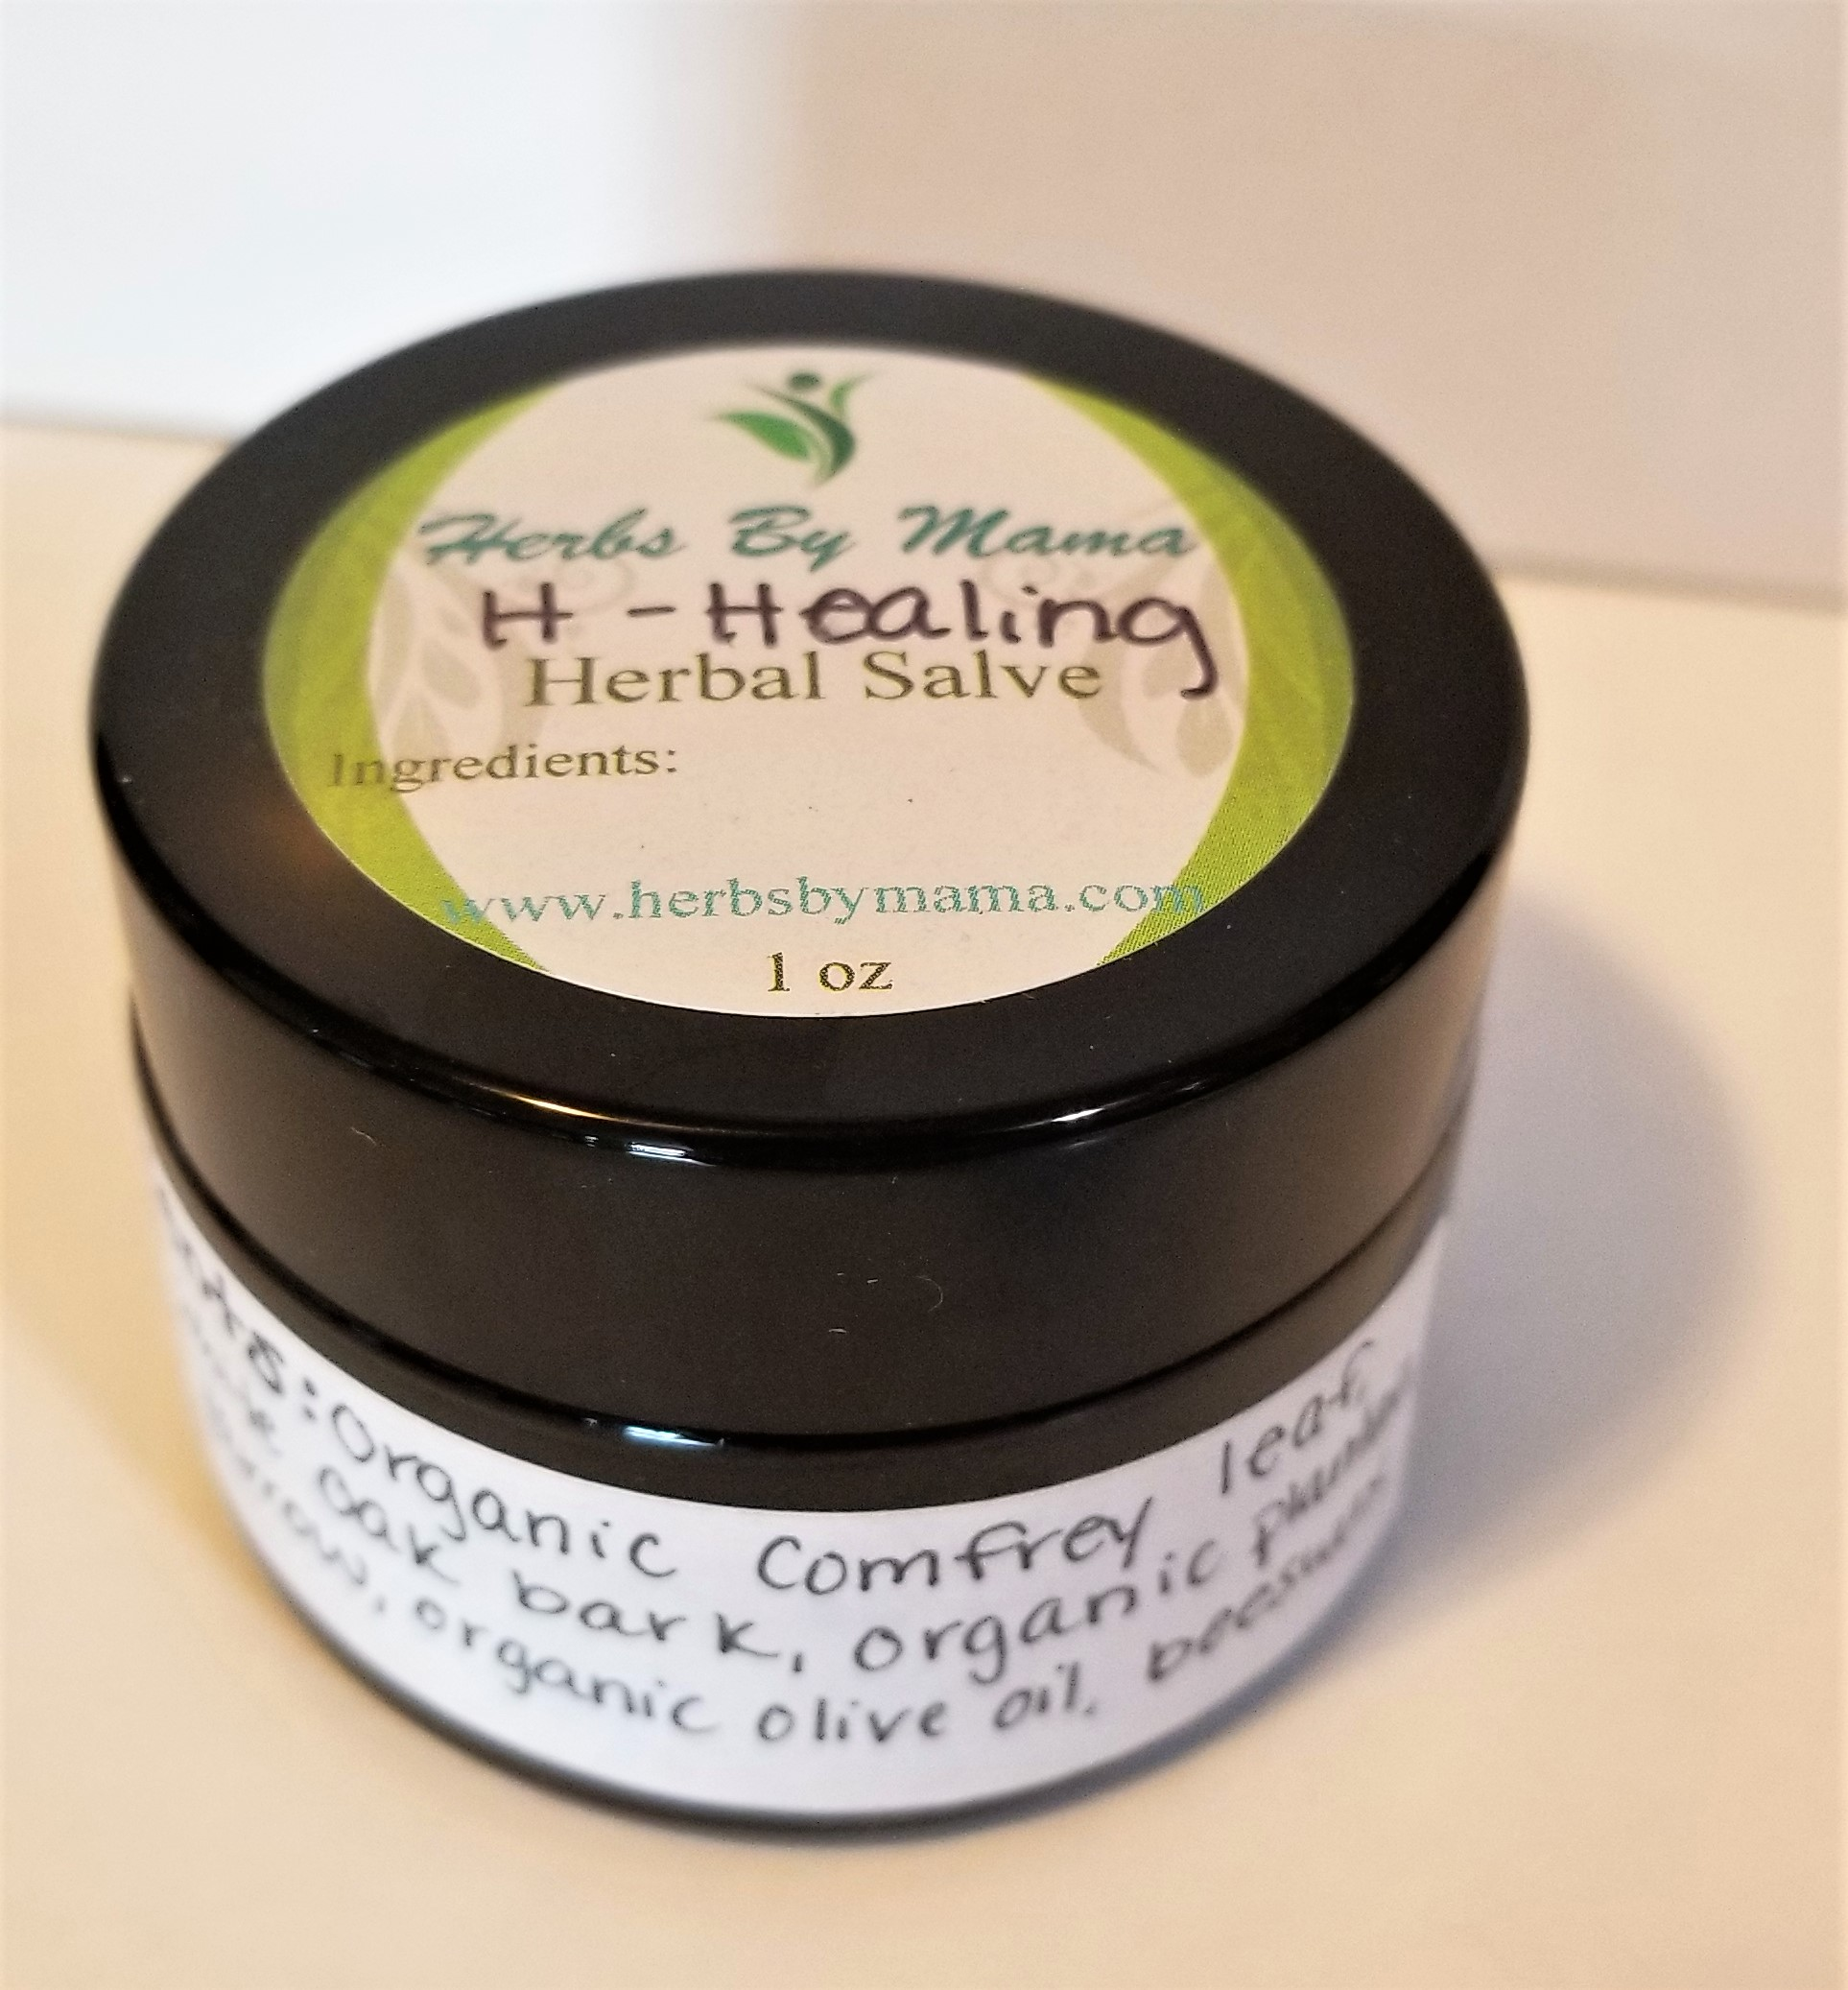 H-Healing Herbal Salve (Hemorrhoid)